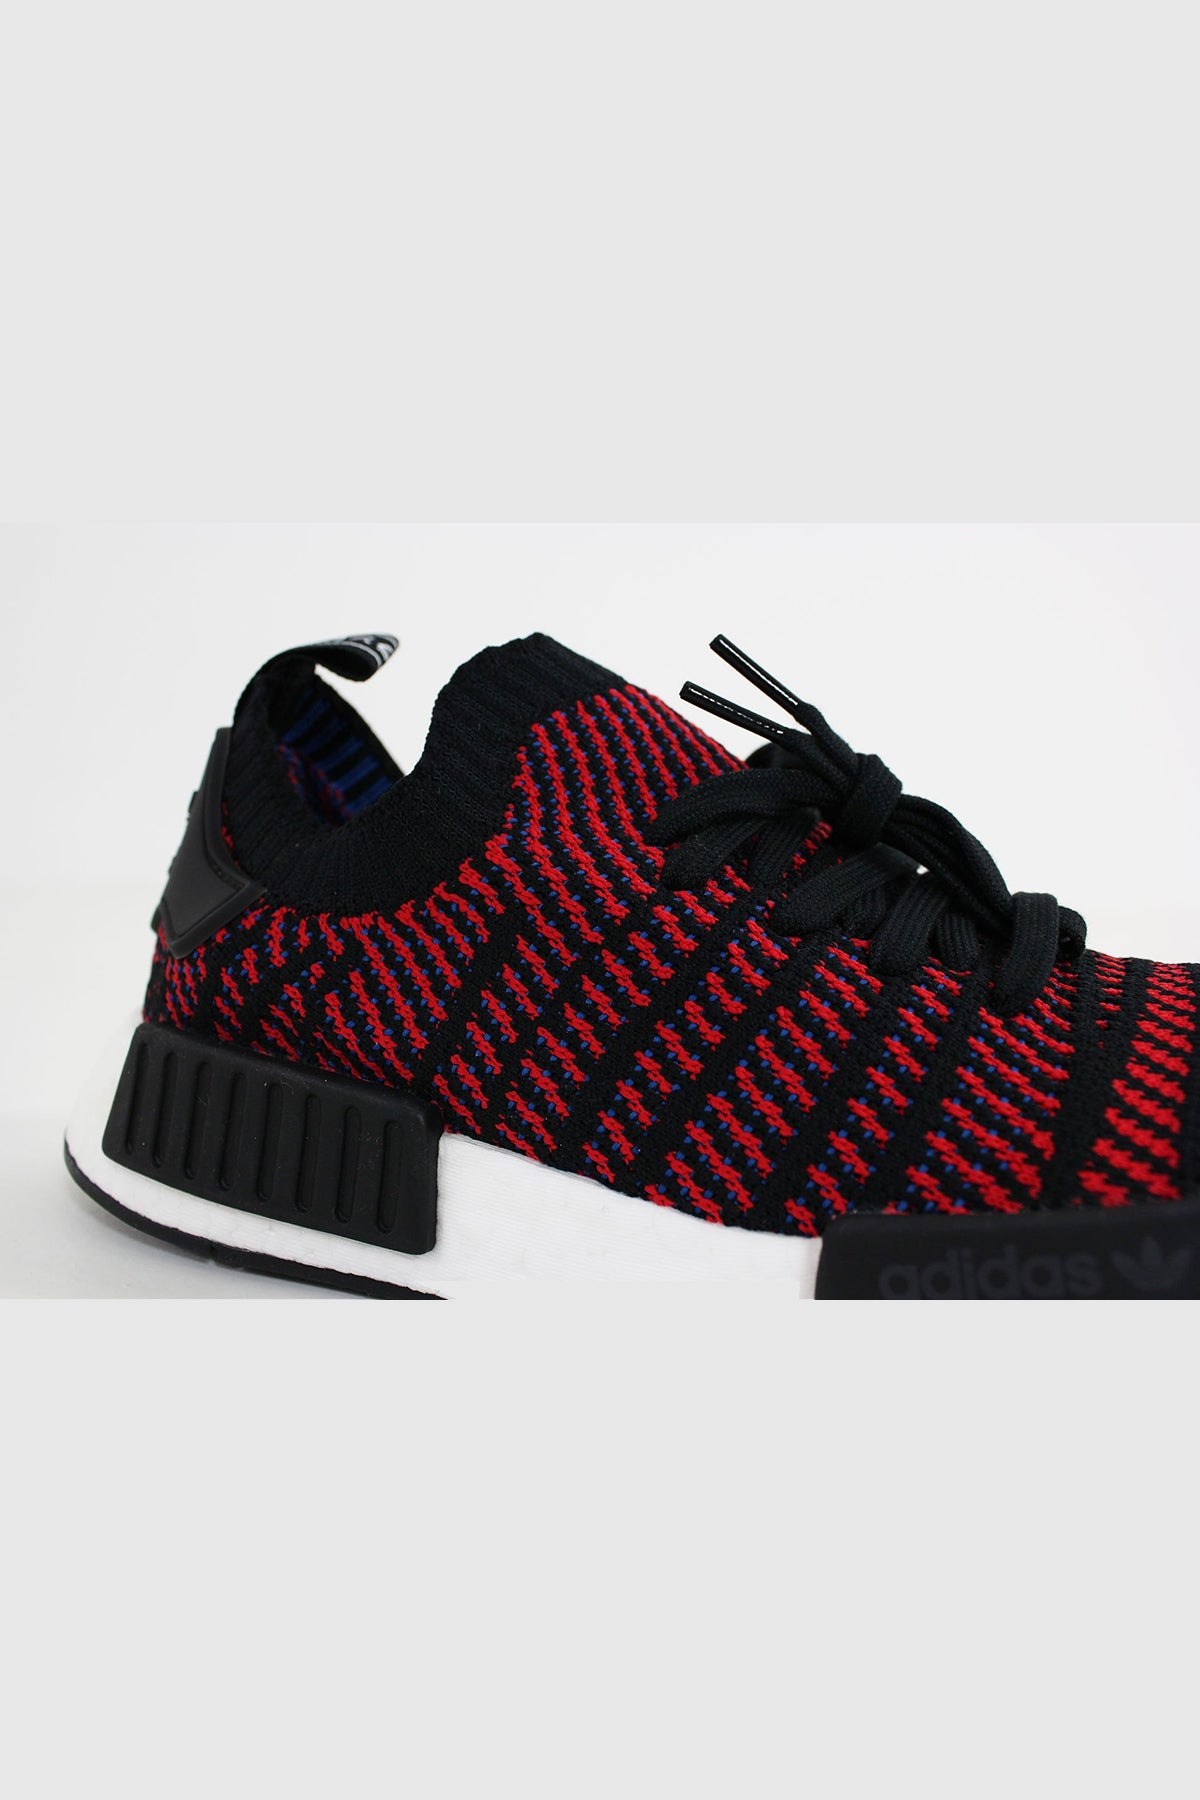 best website 06be8 0562d Adidas - NMD R1 STLT Primeknit (Core Black/ Red SLD/ Blue ...